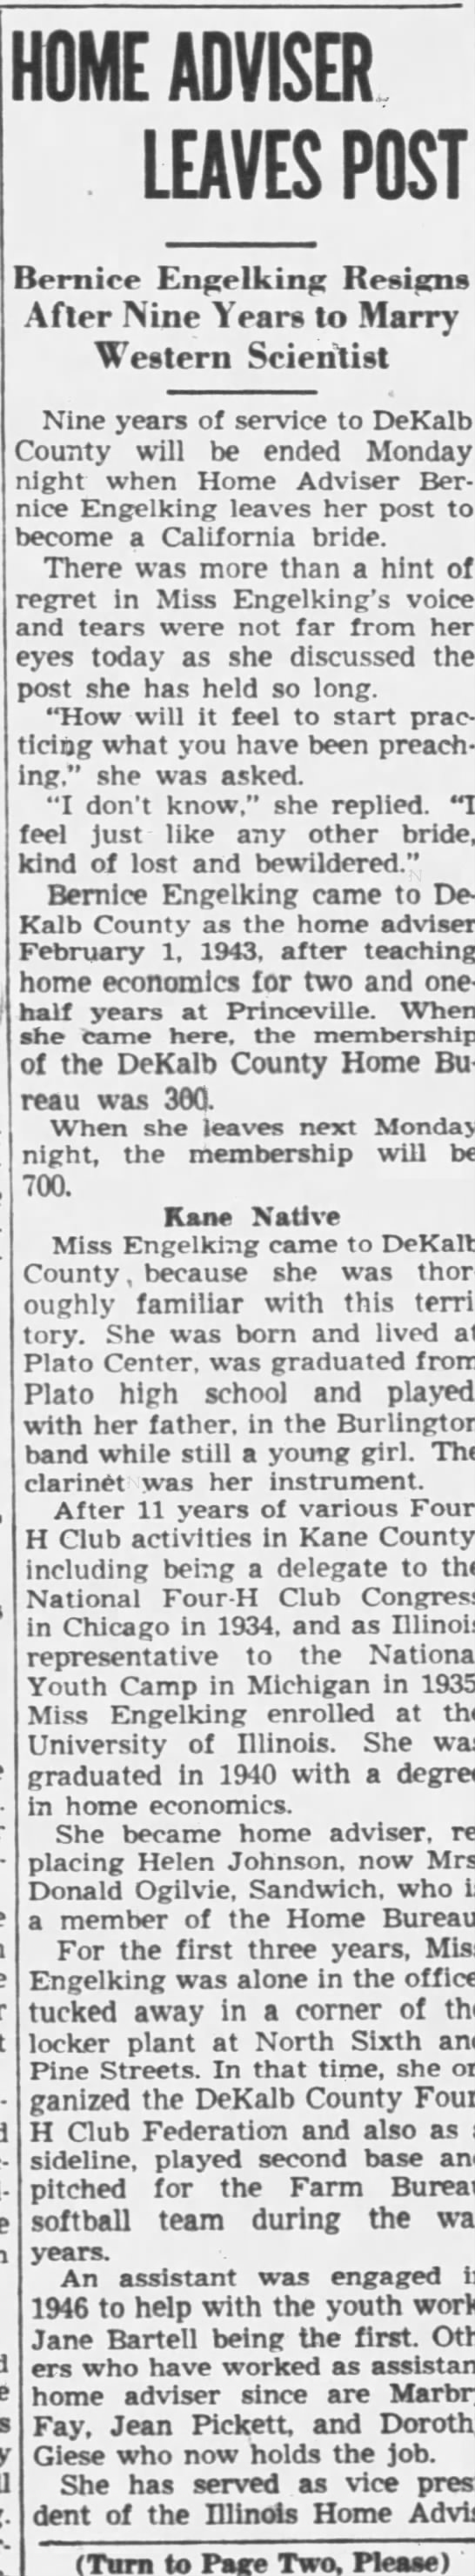 Re CARYL HAYES' Mother The Daily Chronicle, De Kalb, IL March 27, 1952